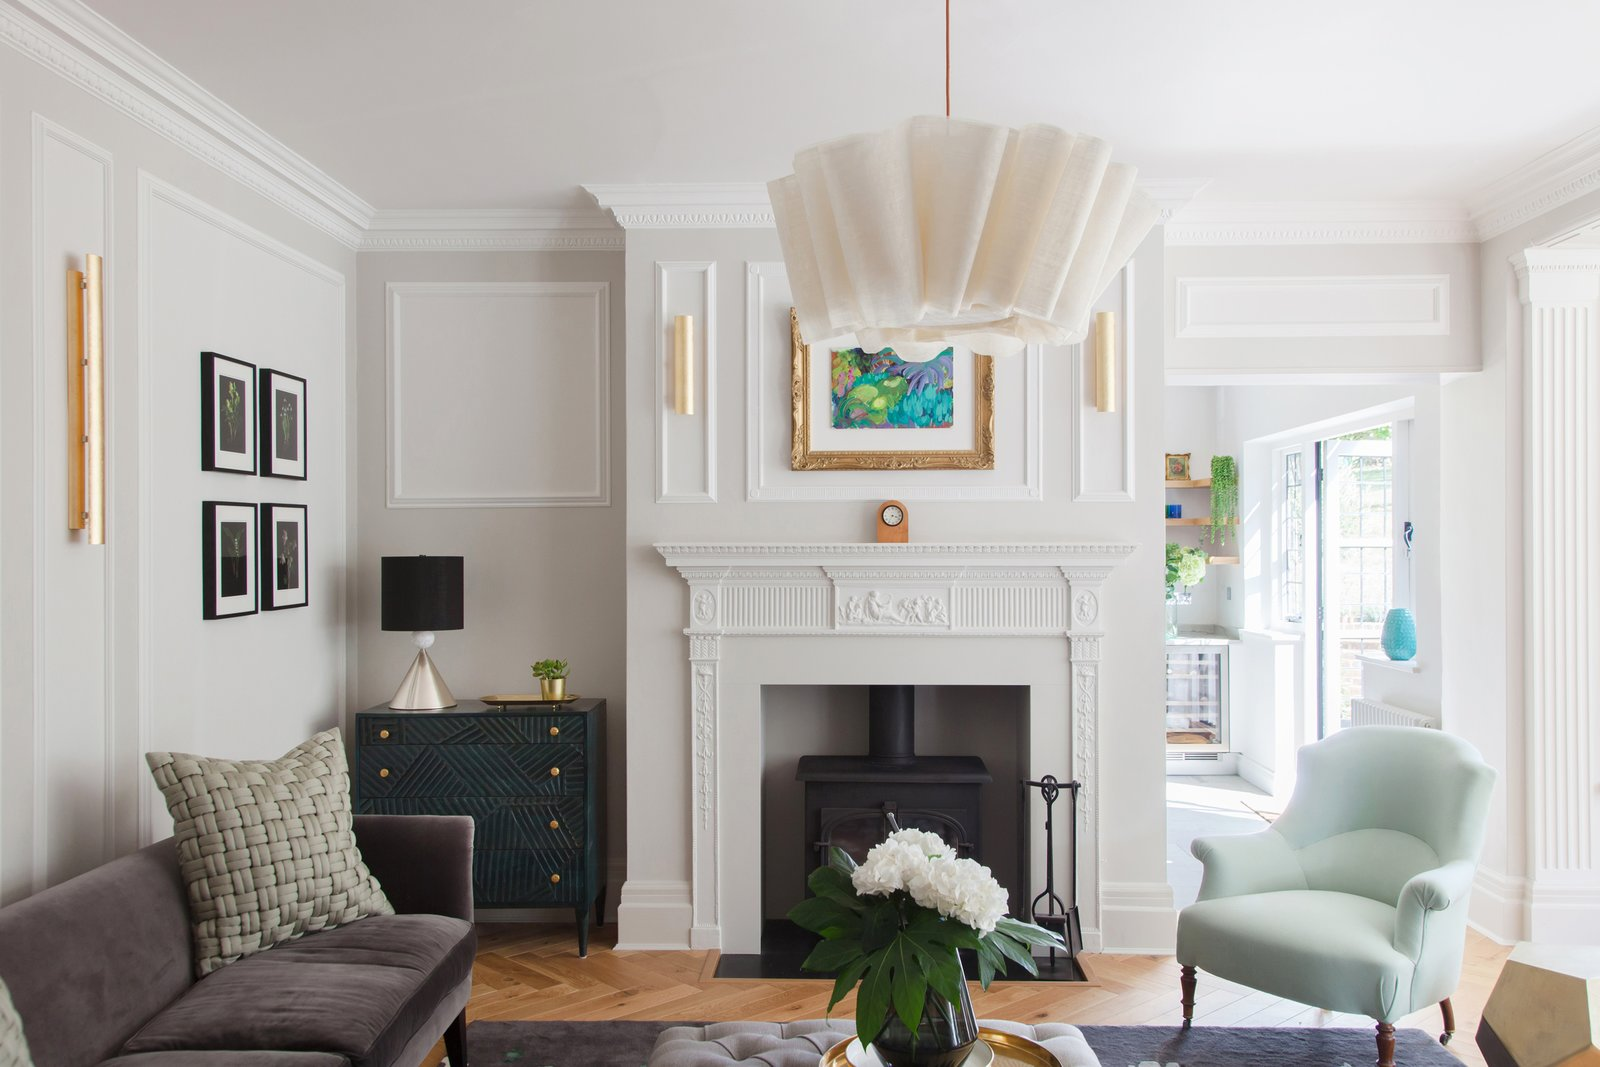 Living Room, Lamps, Medium Hardwood Floor, Console Tables, Table Lighting, Chair, Sofa, Pendant Lighting, and Hanging Fireplace Another Pinch pendant light in the living room.    Photo 11 of 16 in An English Arts and Crafts Home Becomes Delightfully Modernized